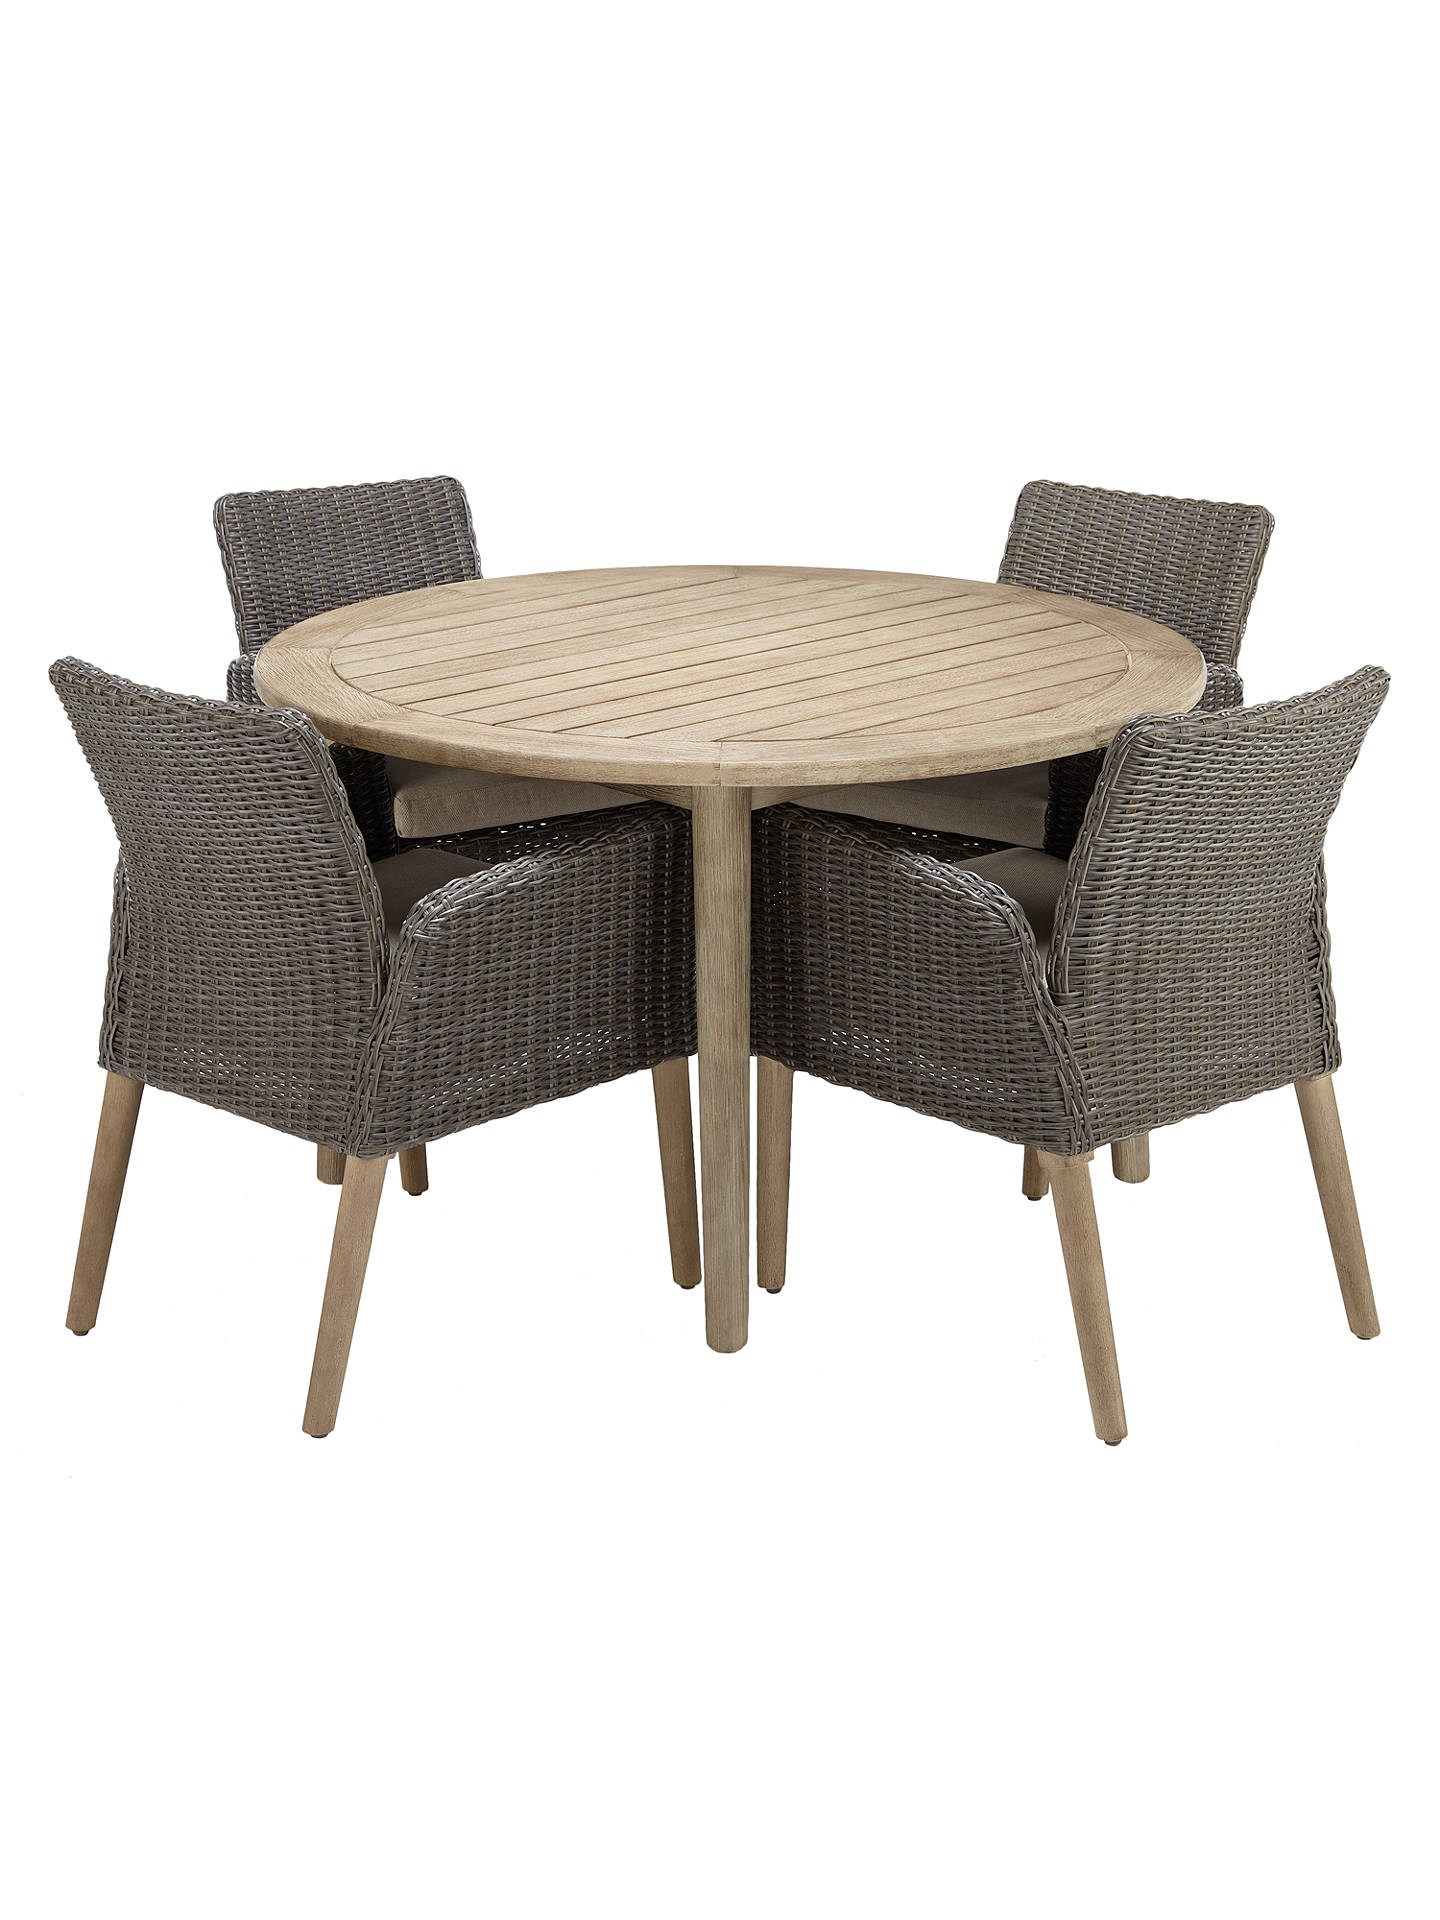 Buy John Lewis & Partners Eden 4-Seater Outdoor Round Dining Table, FSC-Certified (Eucalyptus), Salima Wash Online at johnlewis.com